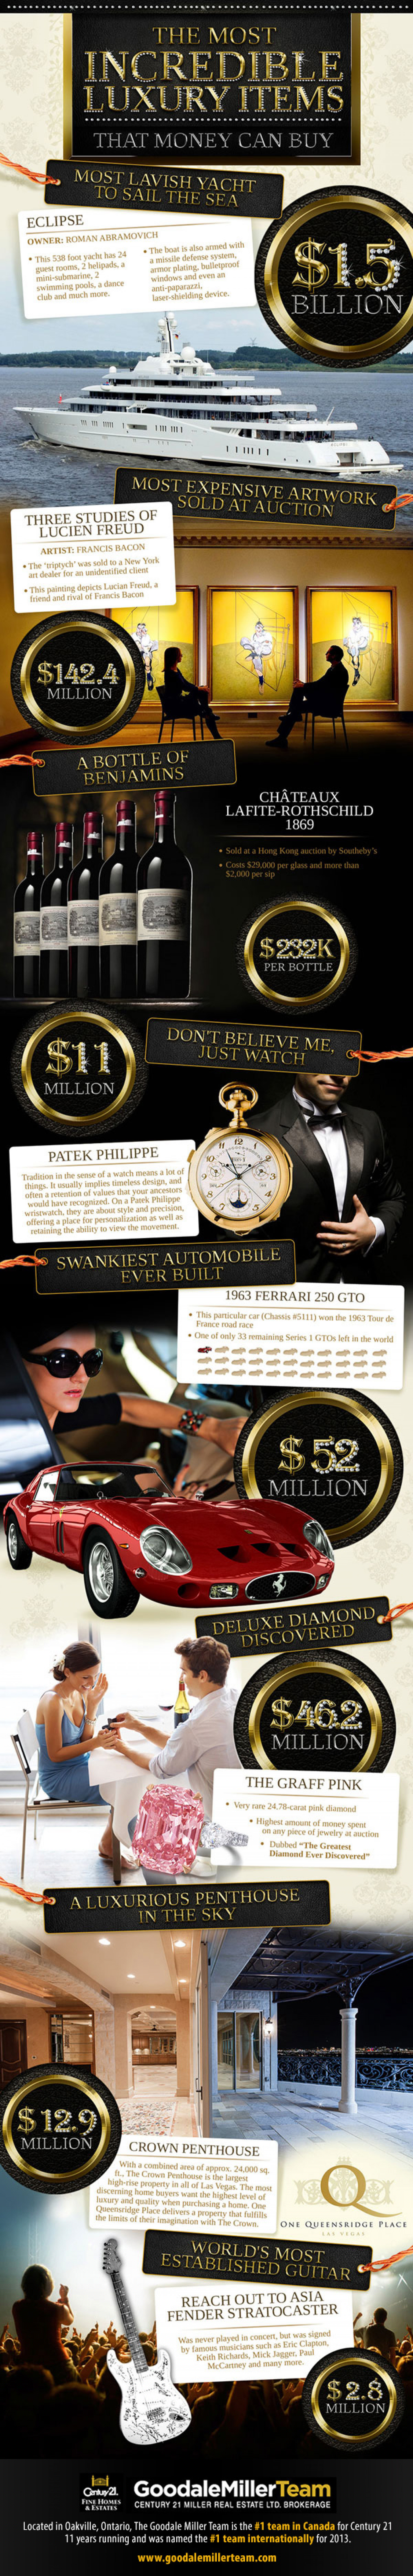 The World's Greatest Luxury Items! Infographic